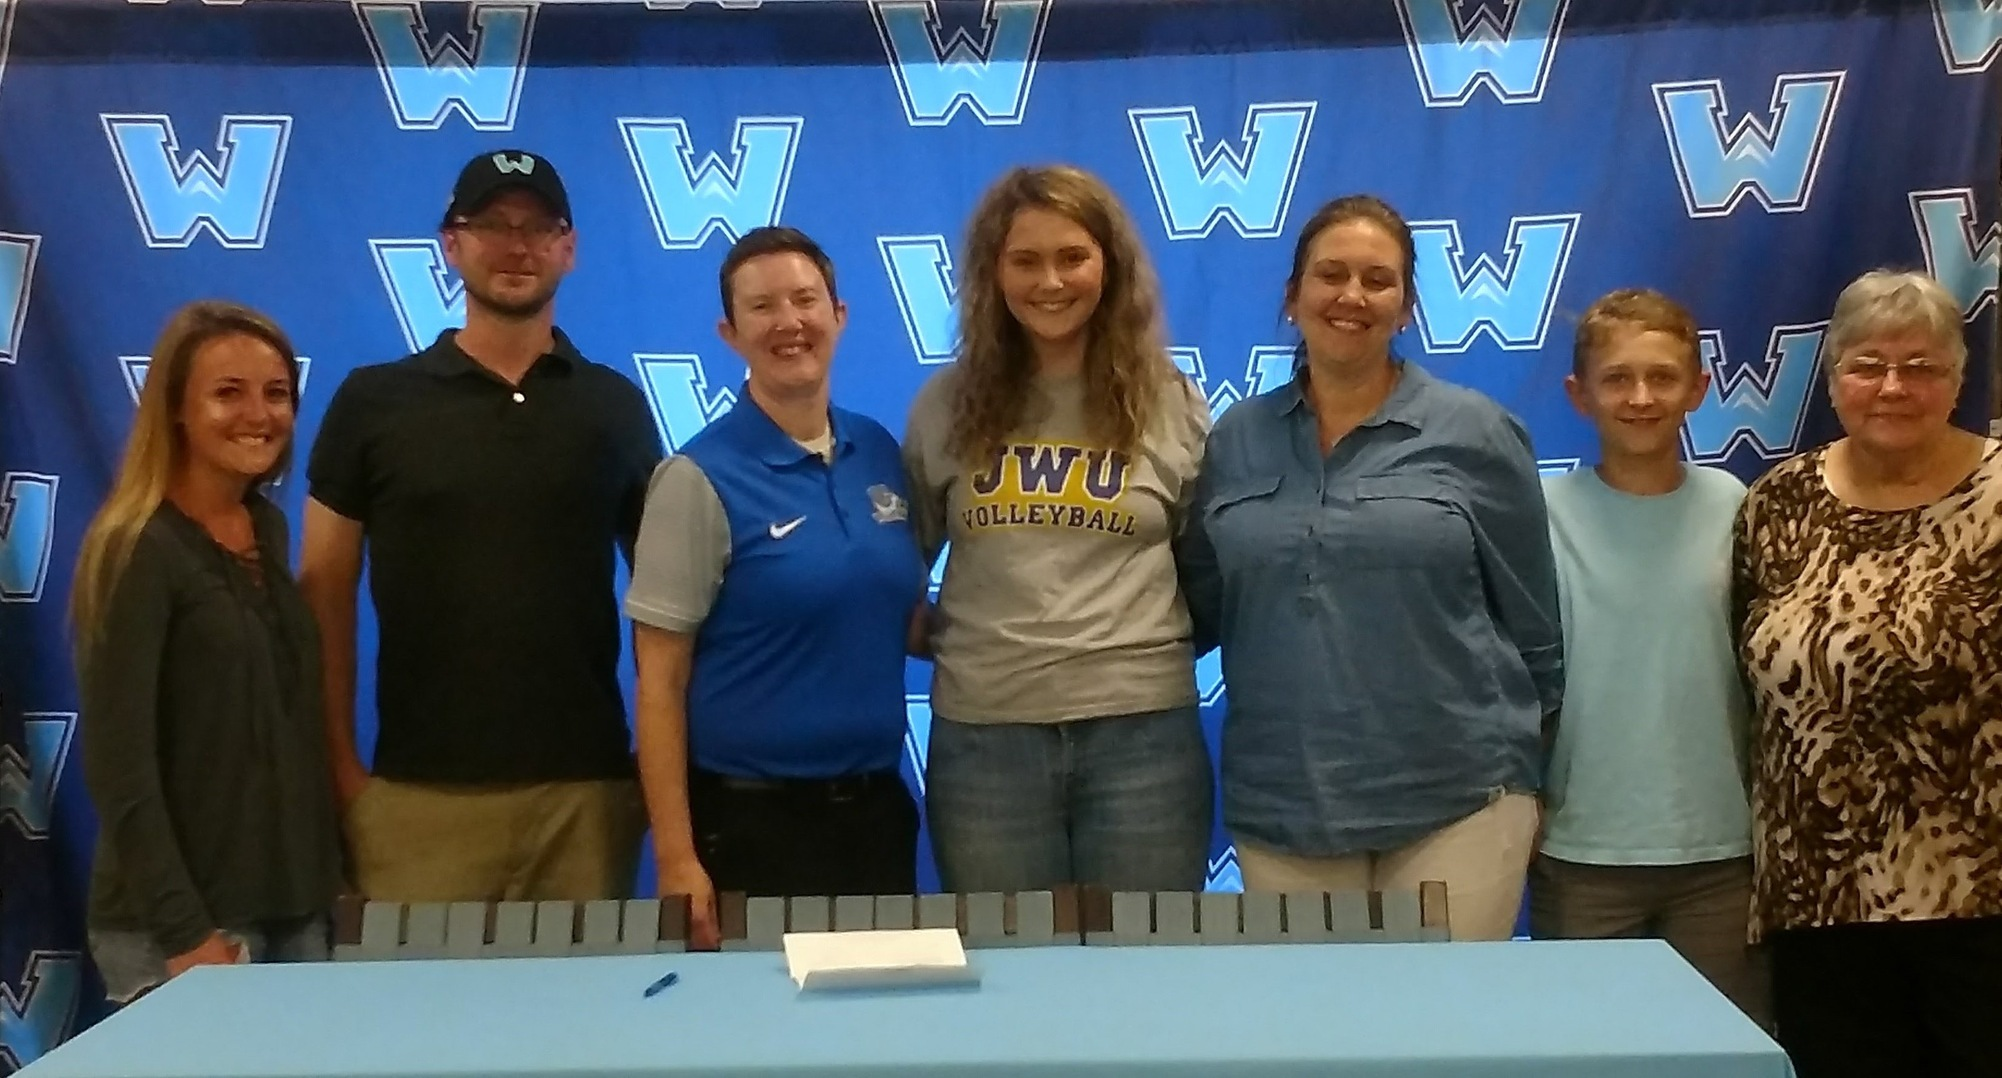 Watauga's Taylor Walker Signs With JWU Volleyball